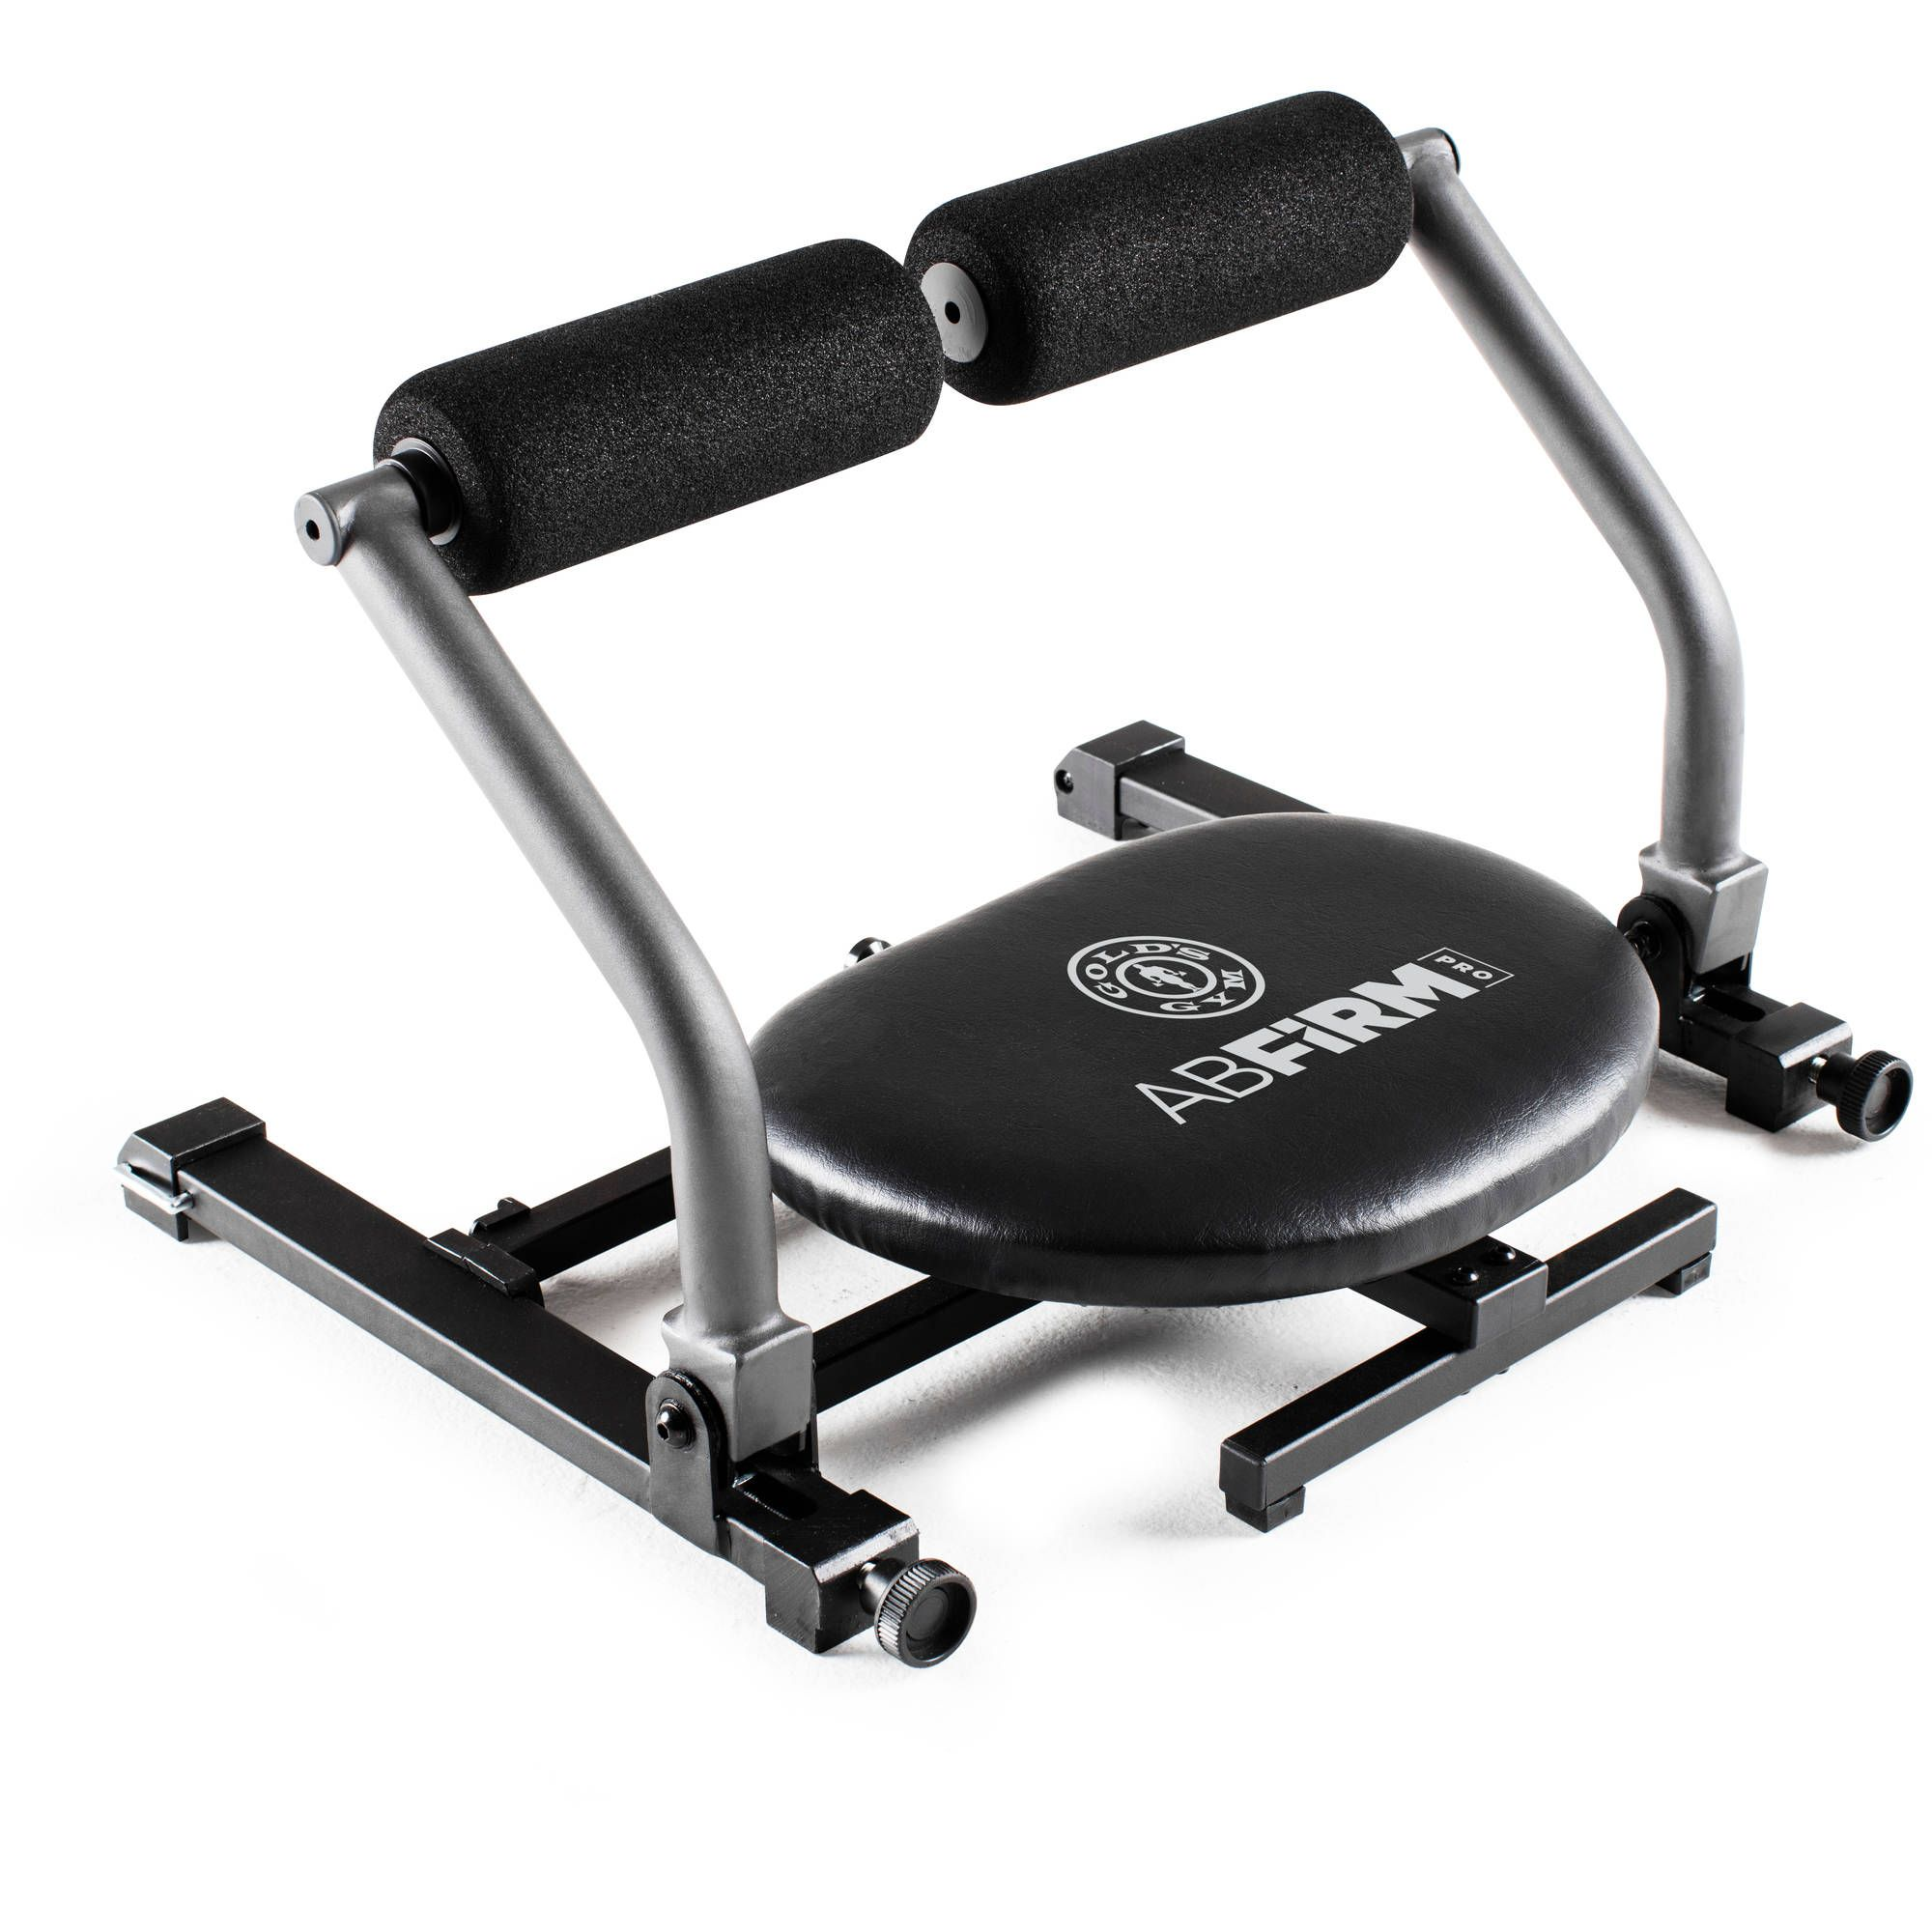 Gold S Gym Abfirm Pro Deal Golds Gym Gym Abs No Equipment Workout